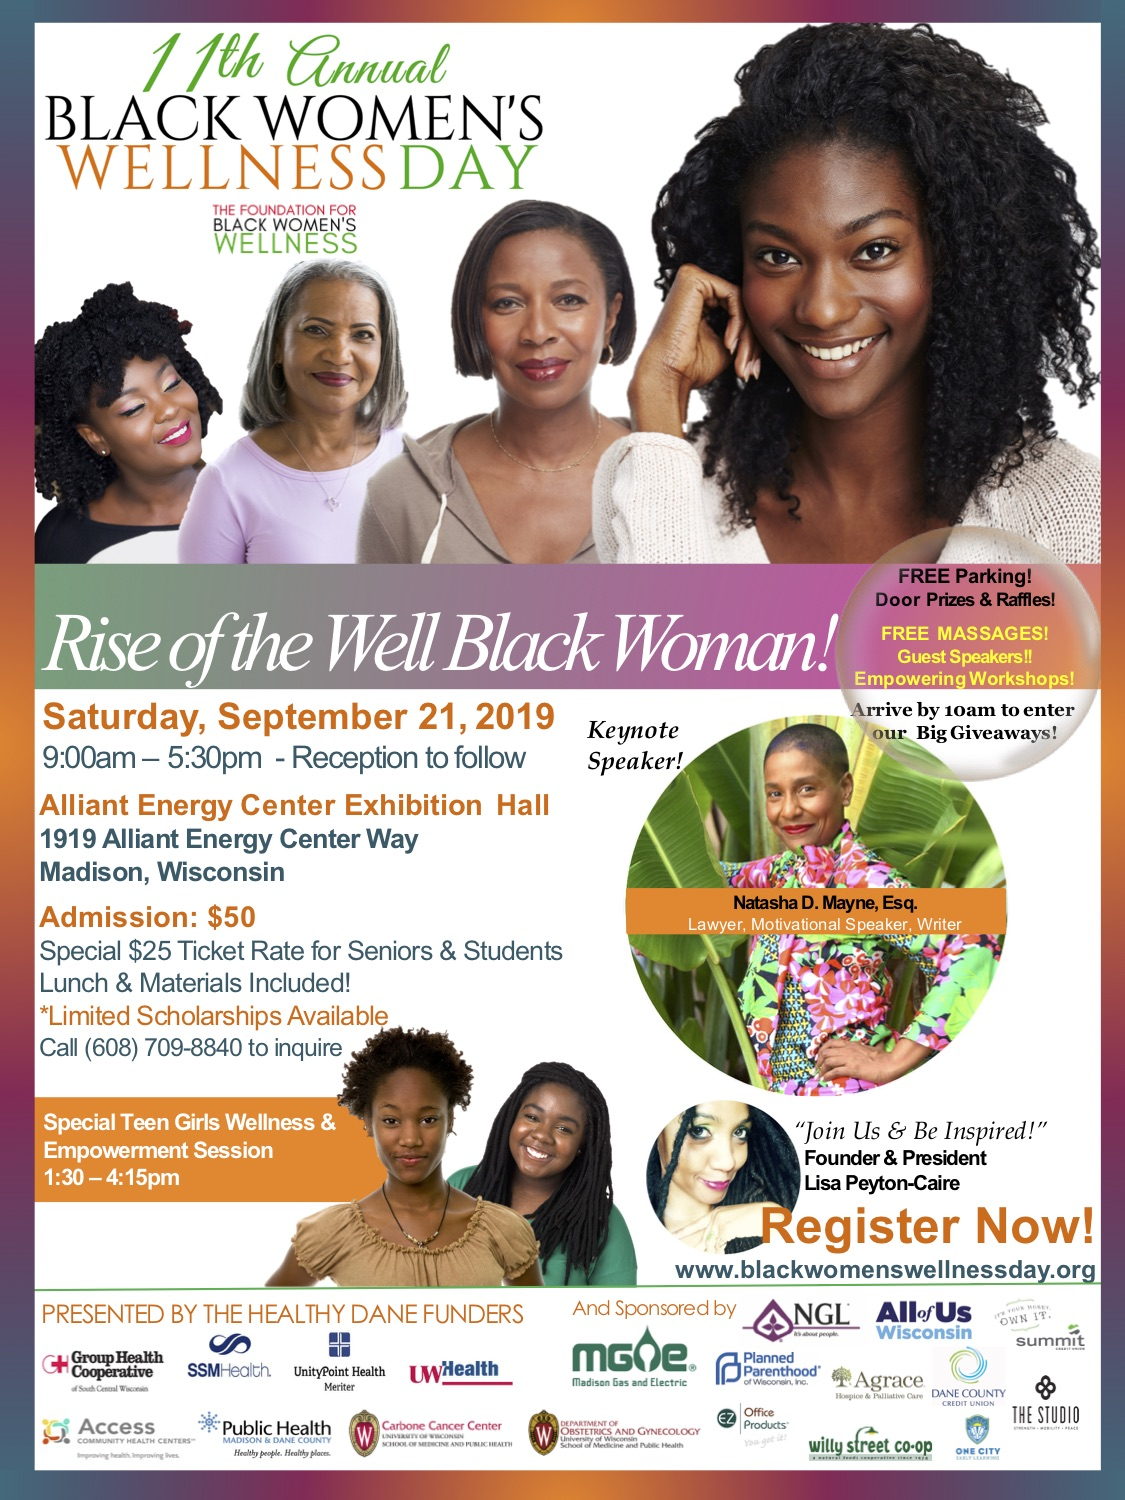 2019 BWWDAY Flyer with Natasha D. Mayne